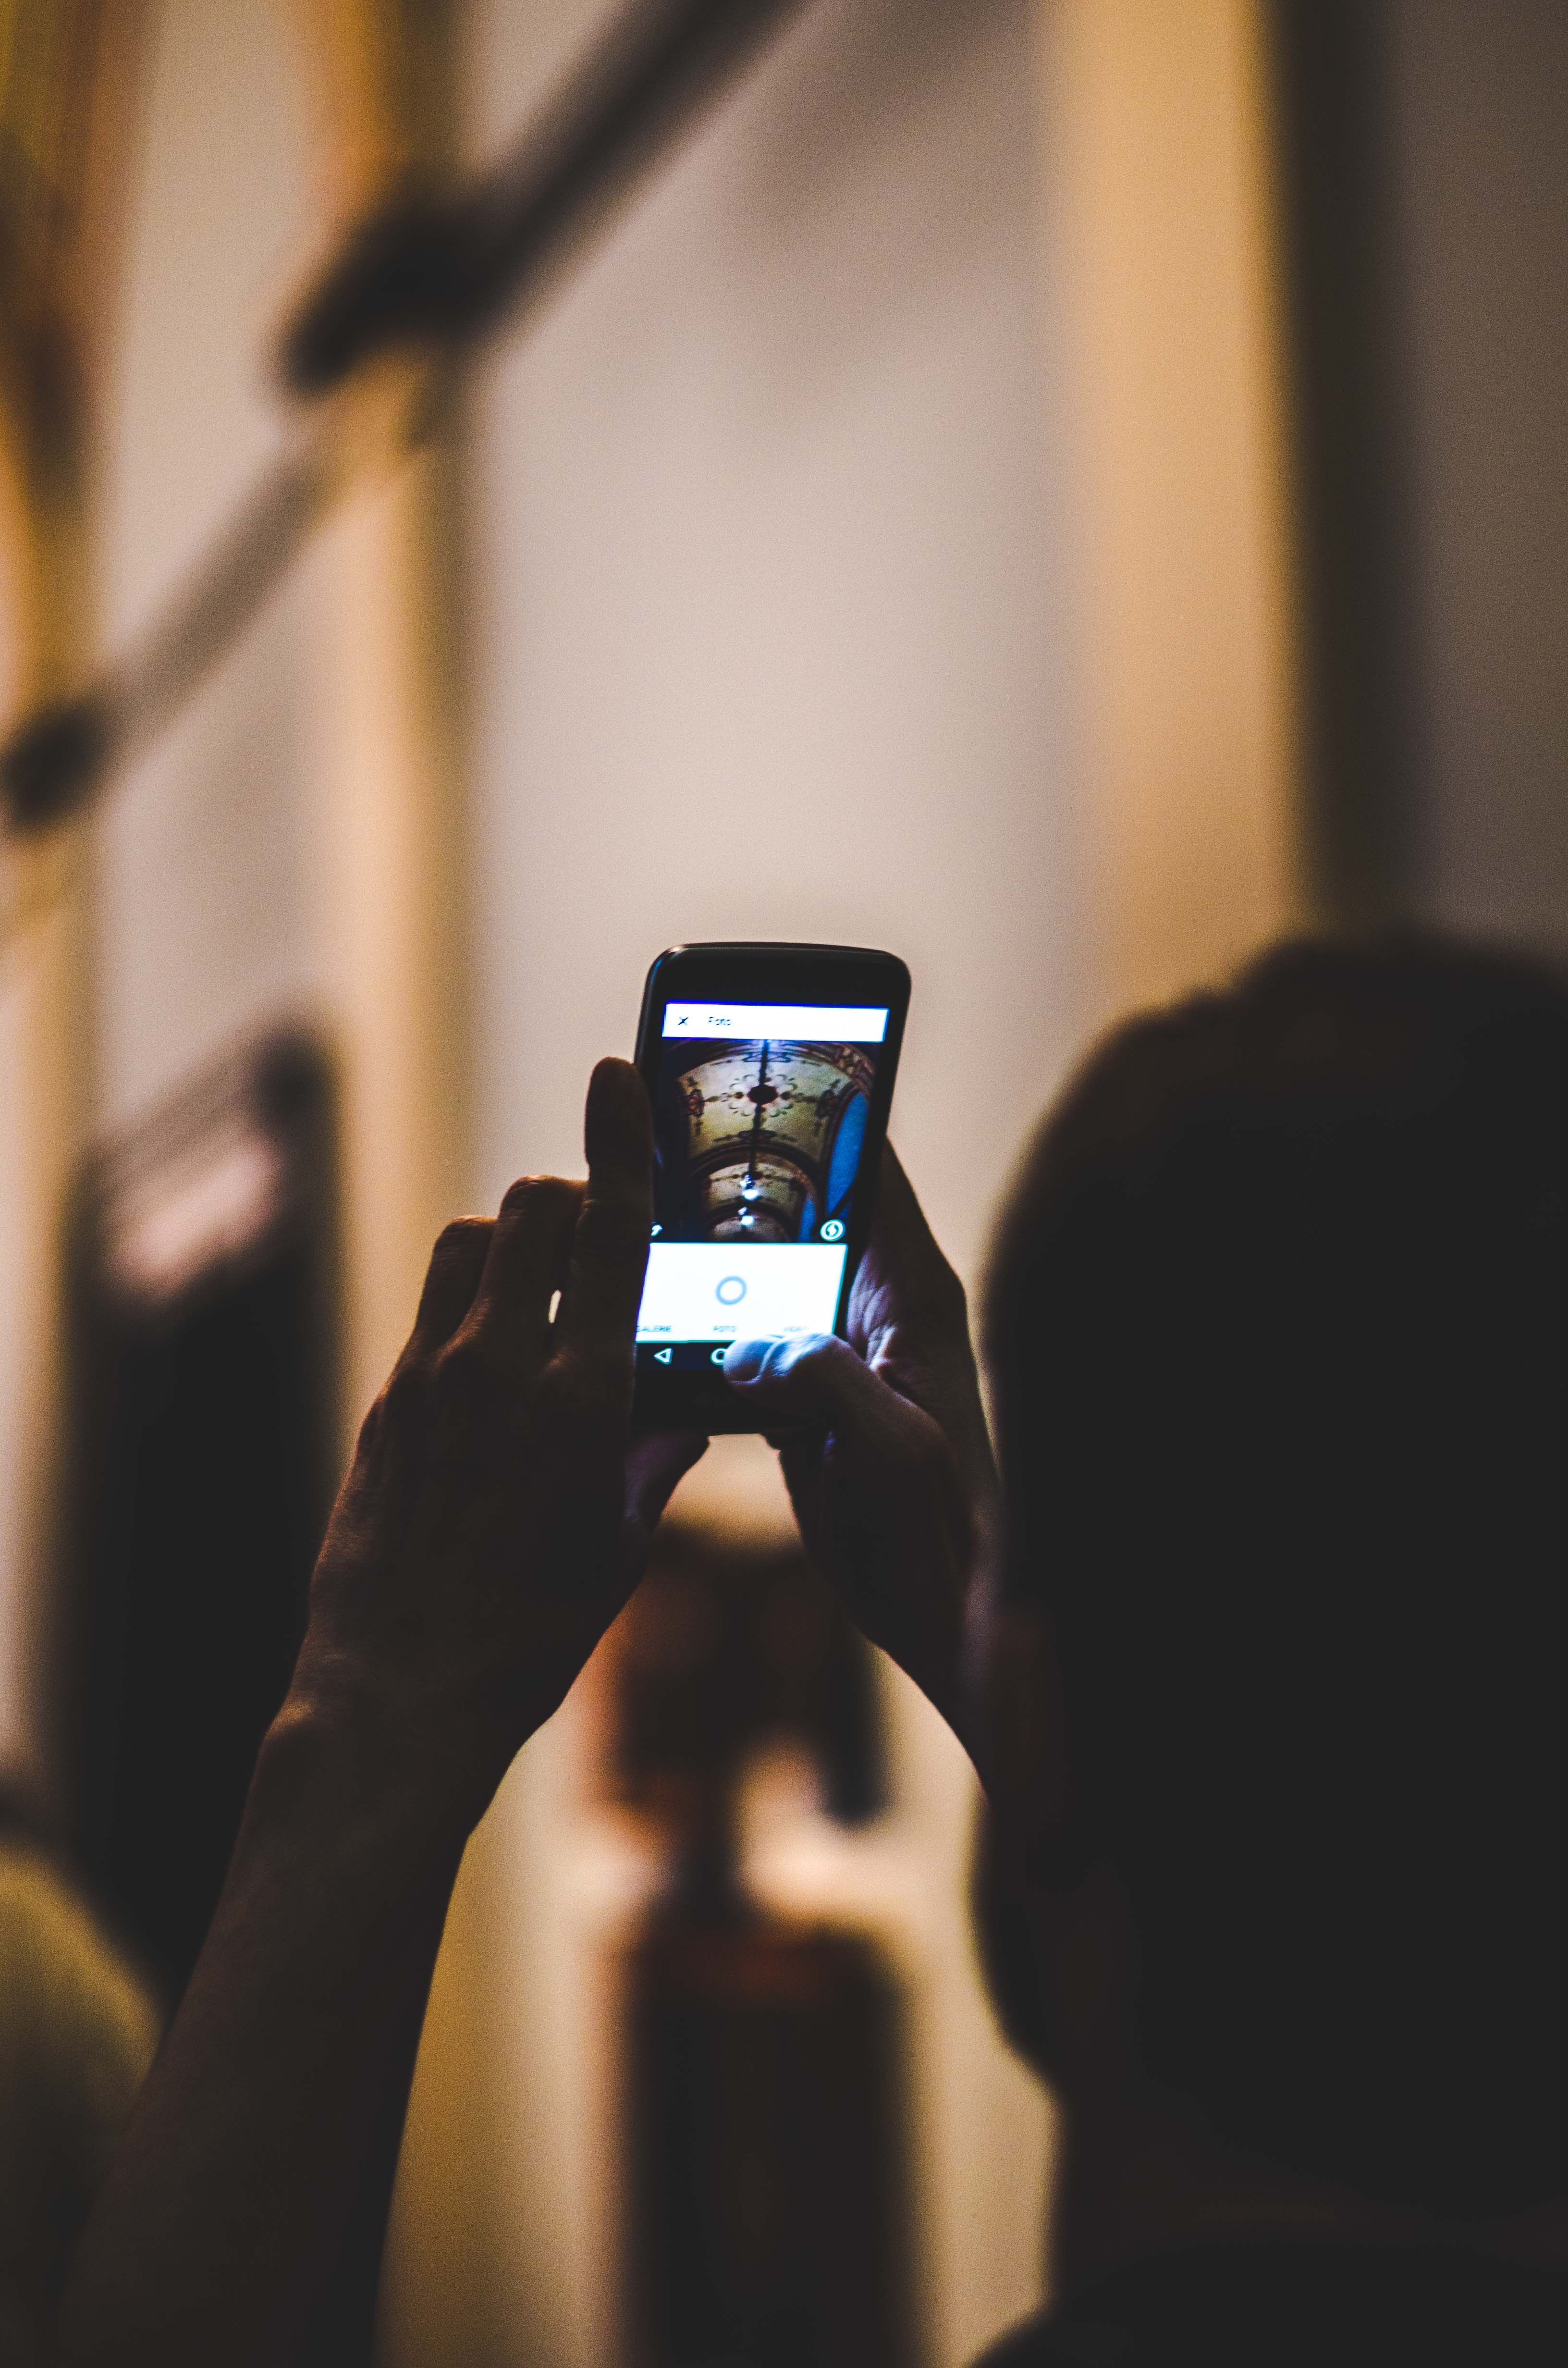 selective focus photo of person taking photo on phone